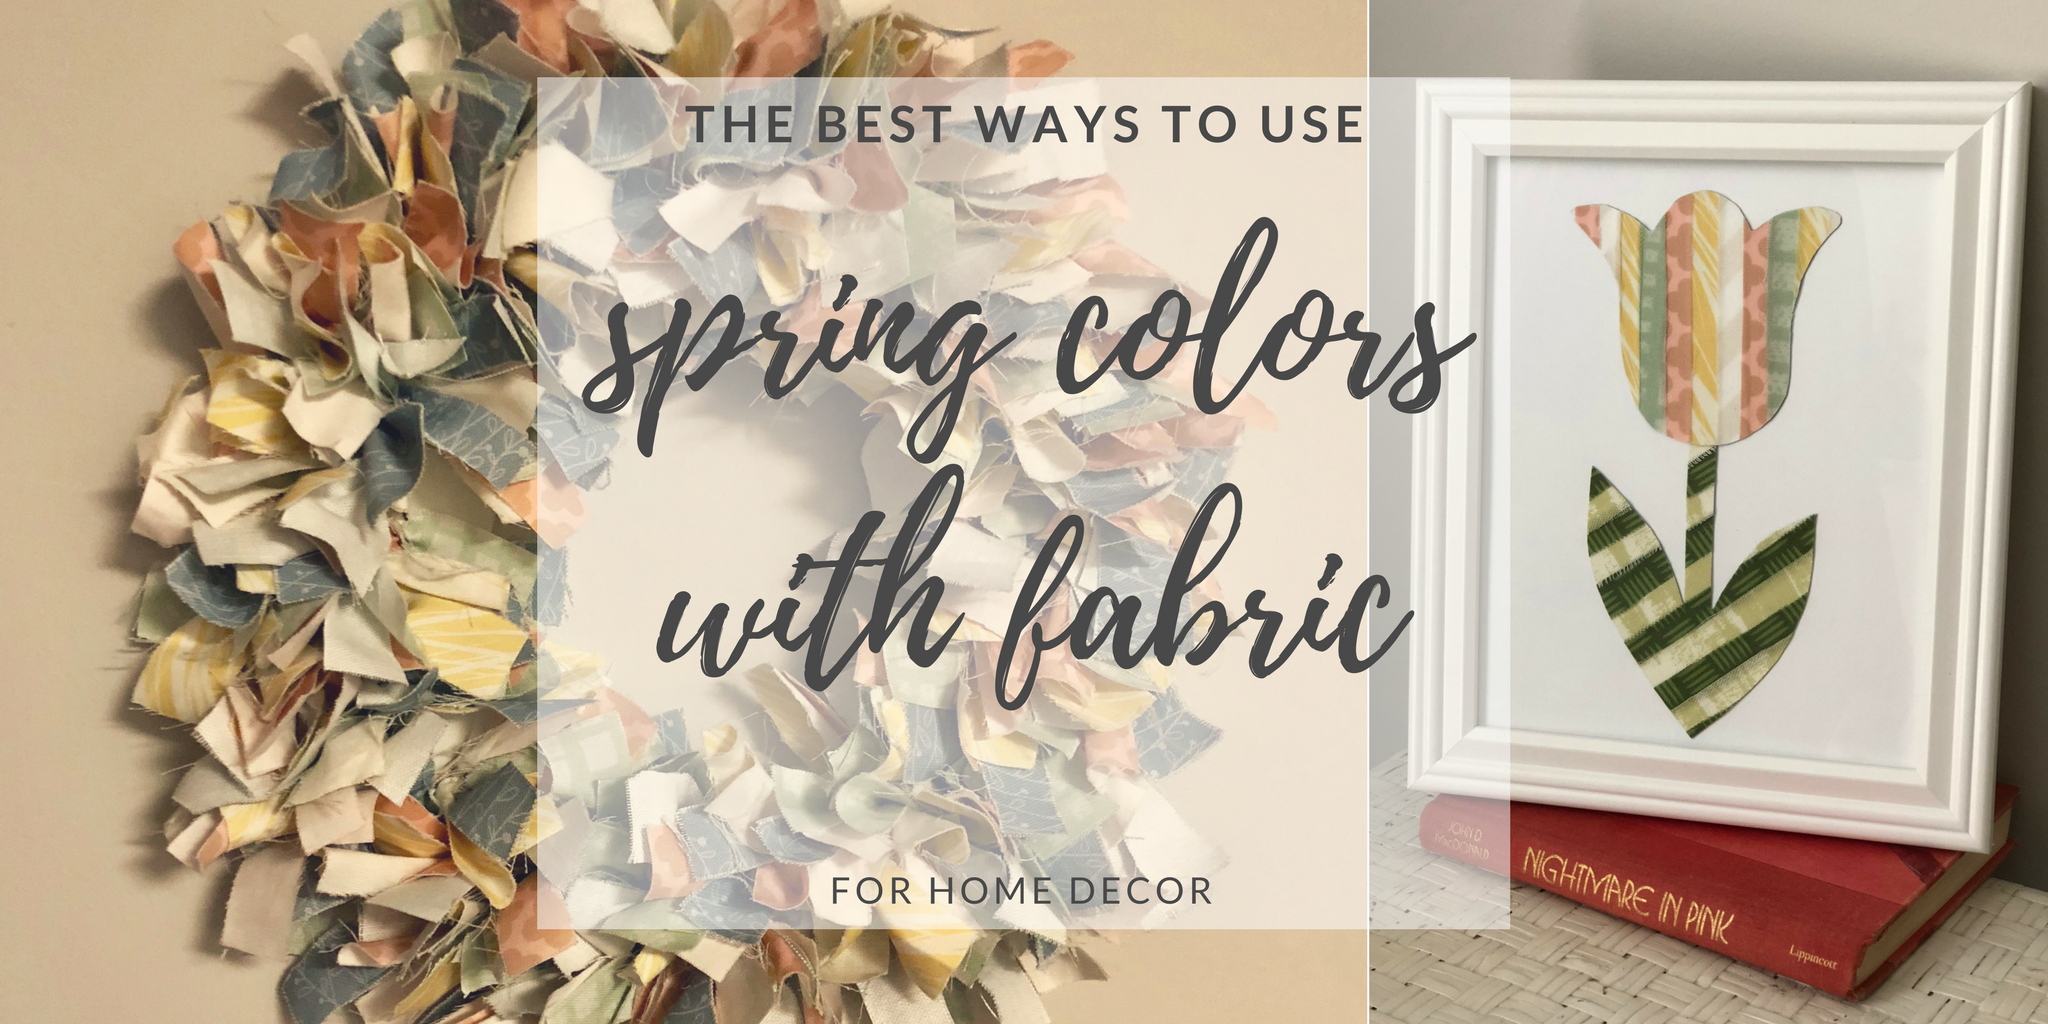 The Best Ways To Use Spring Colors With Fabric For Home Décor